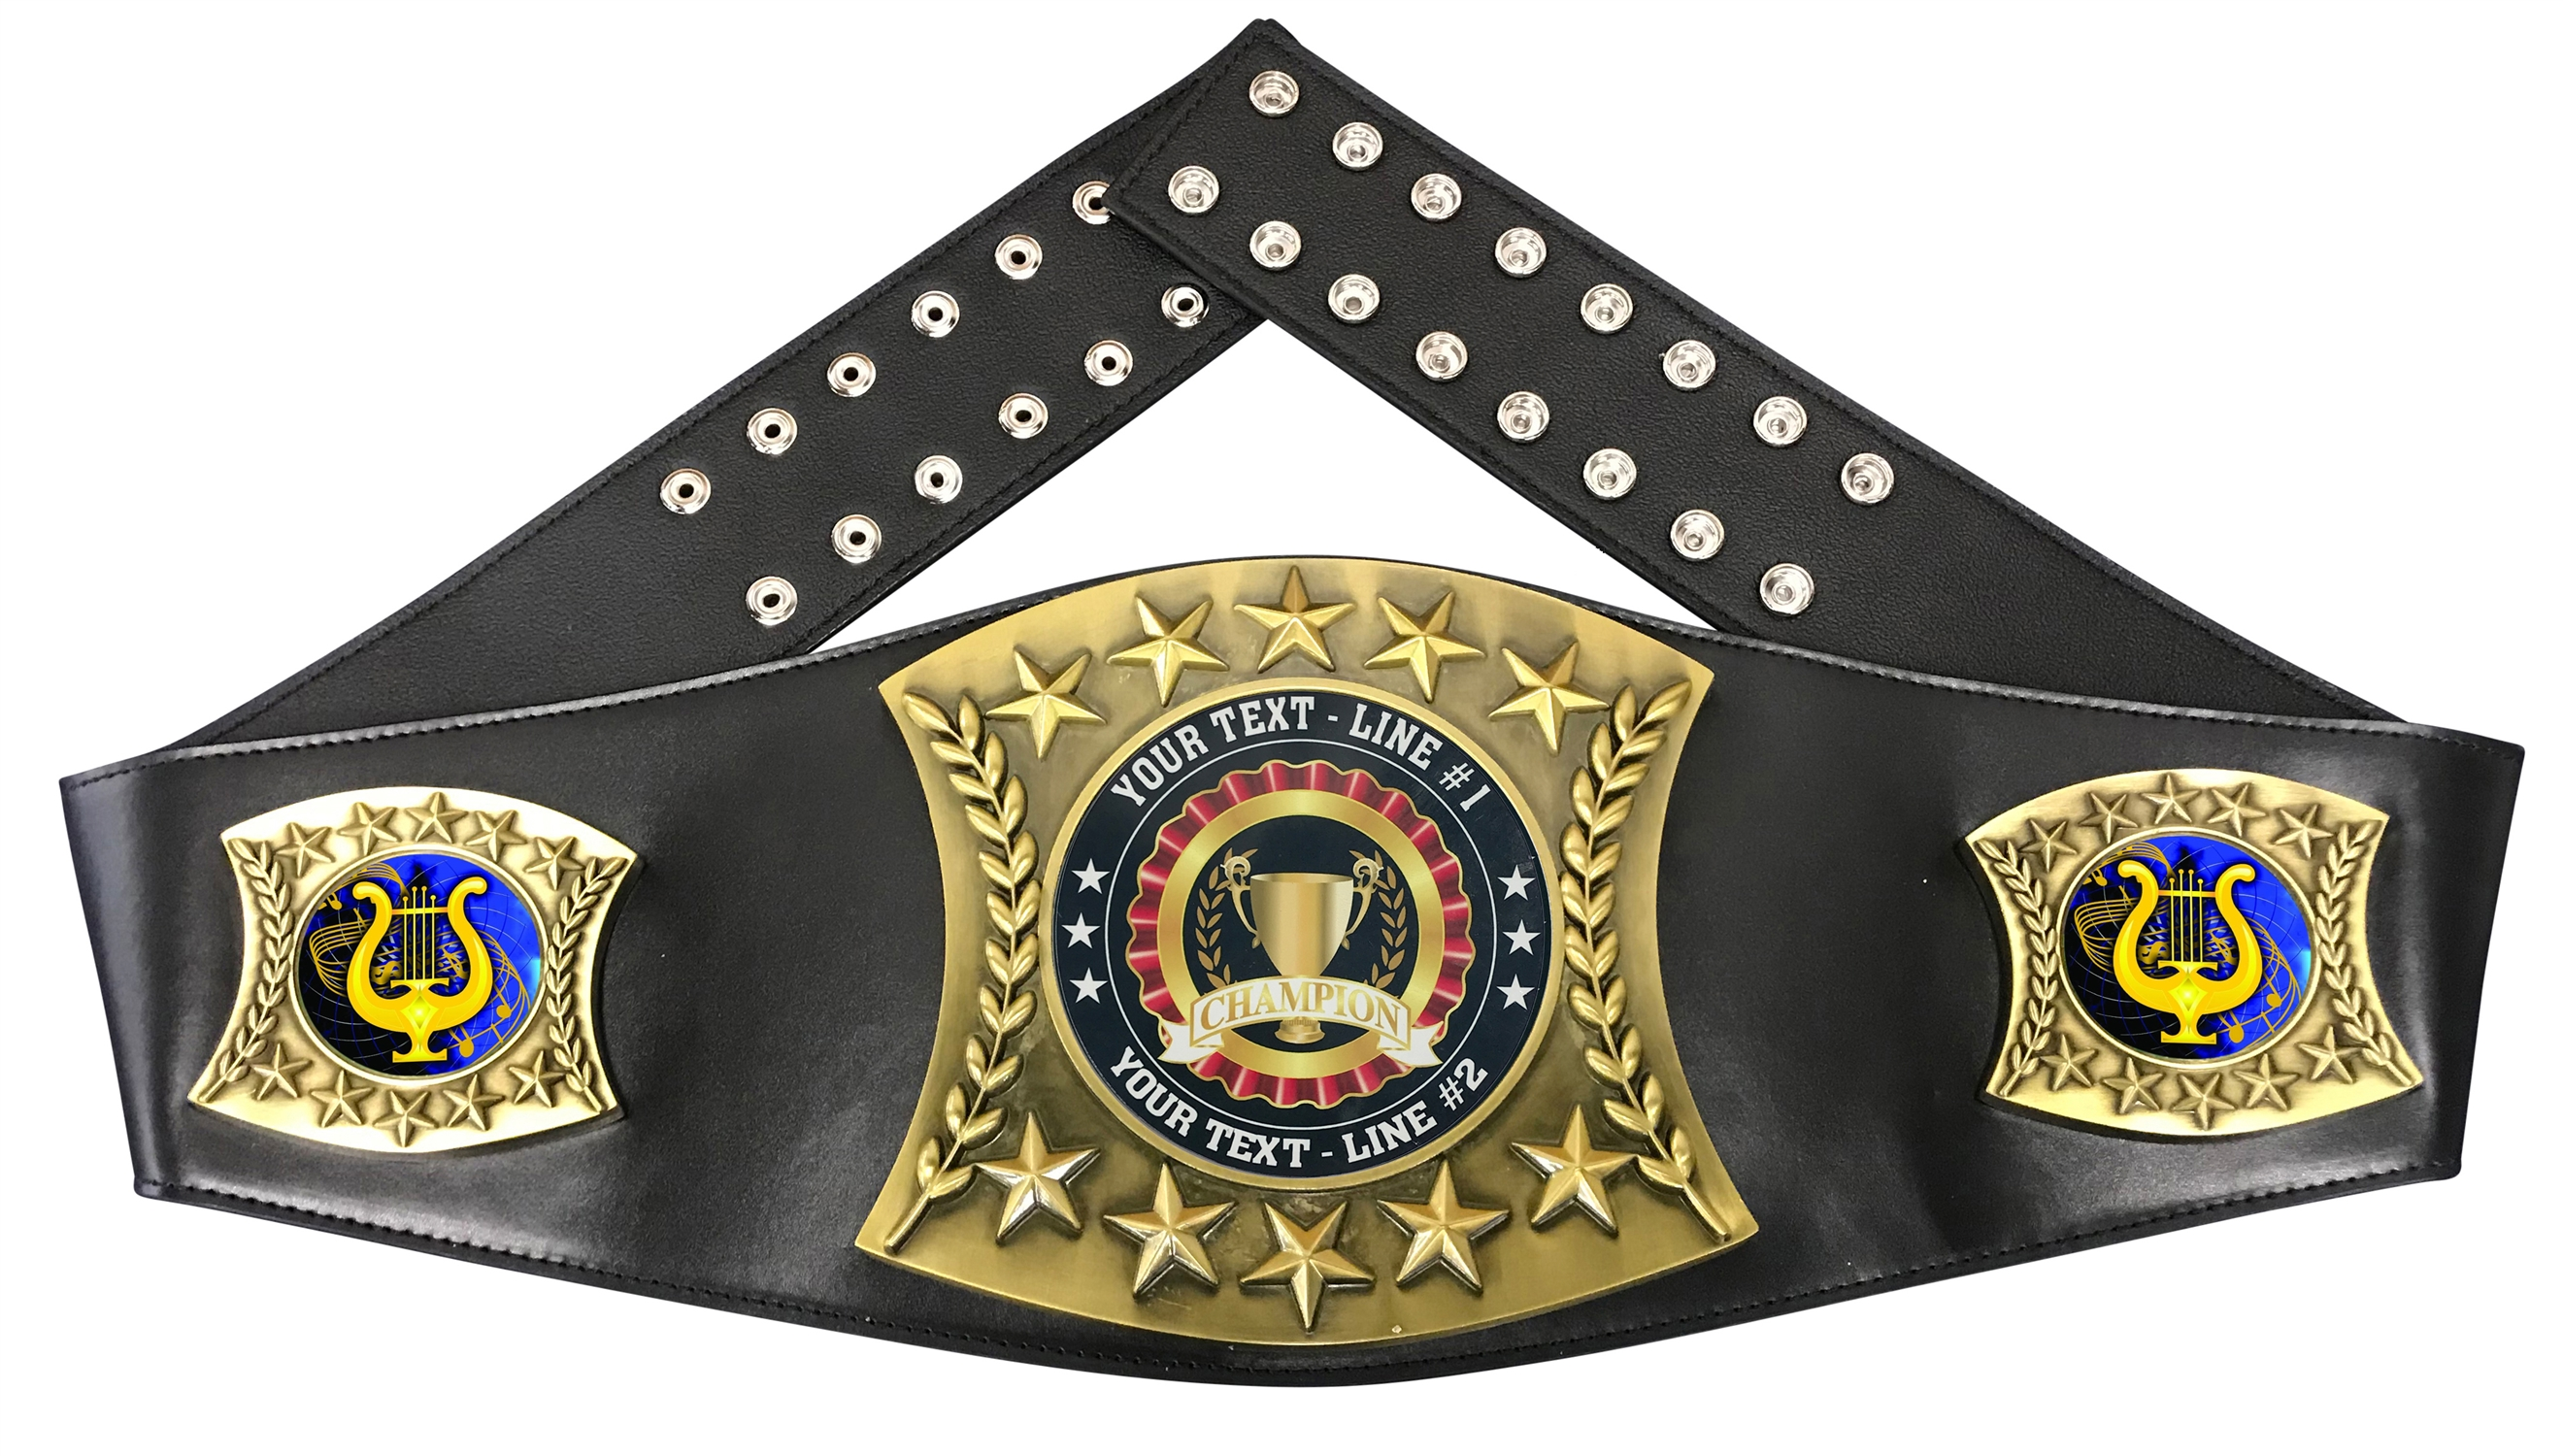 Music Personalized Championship Belt